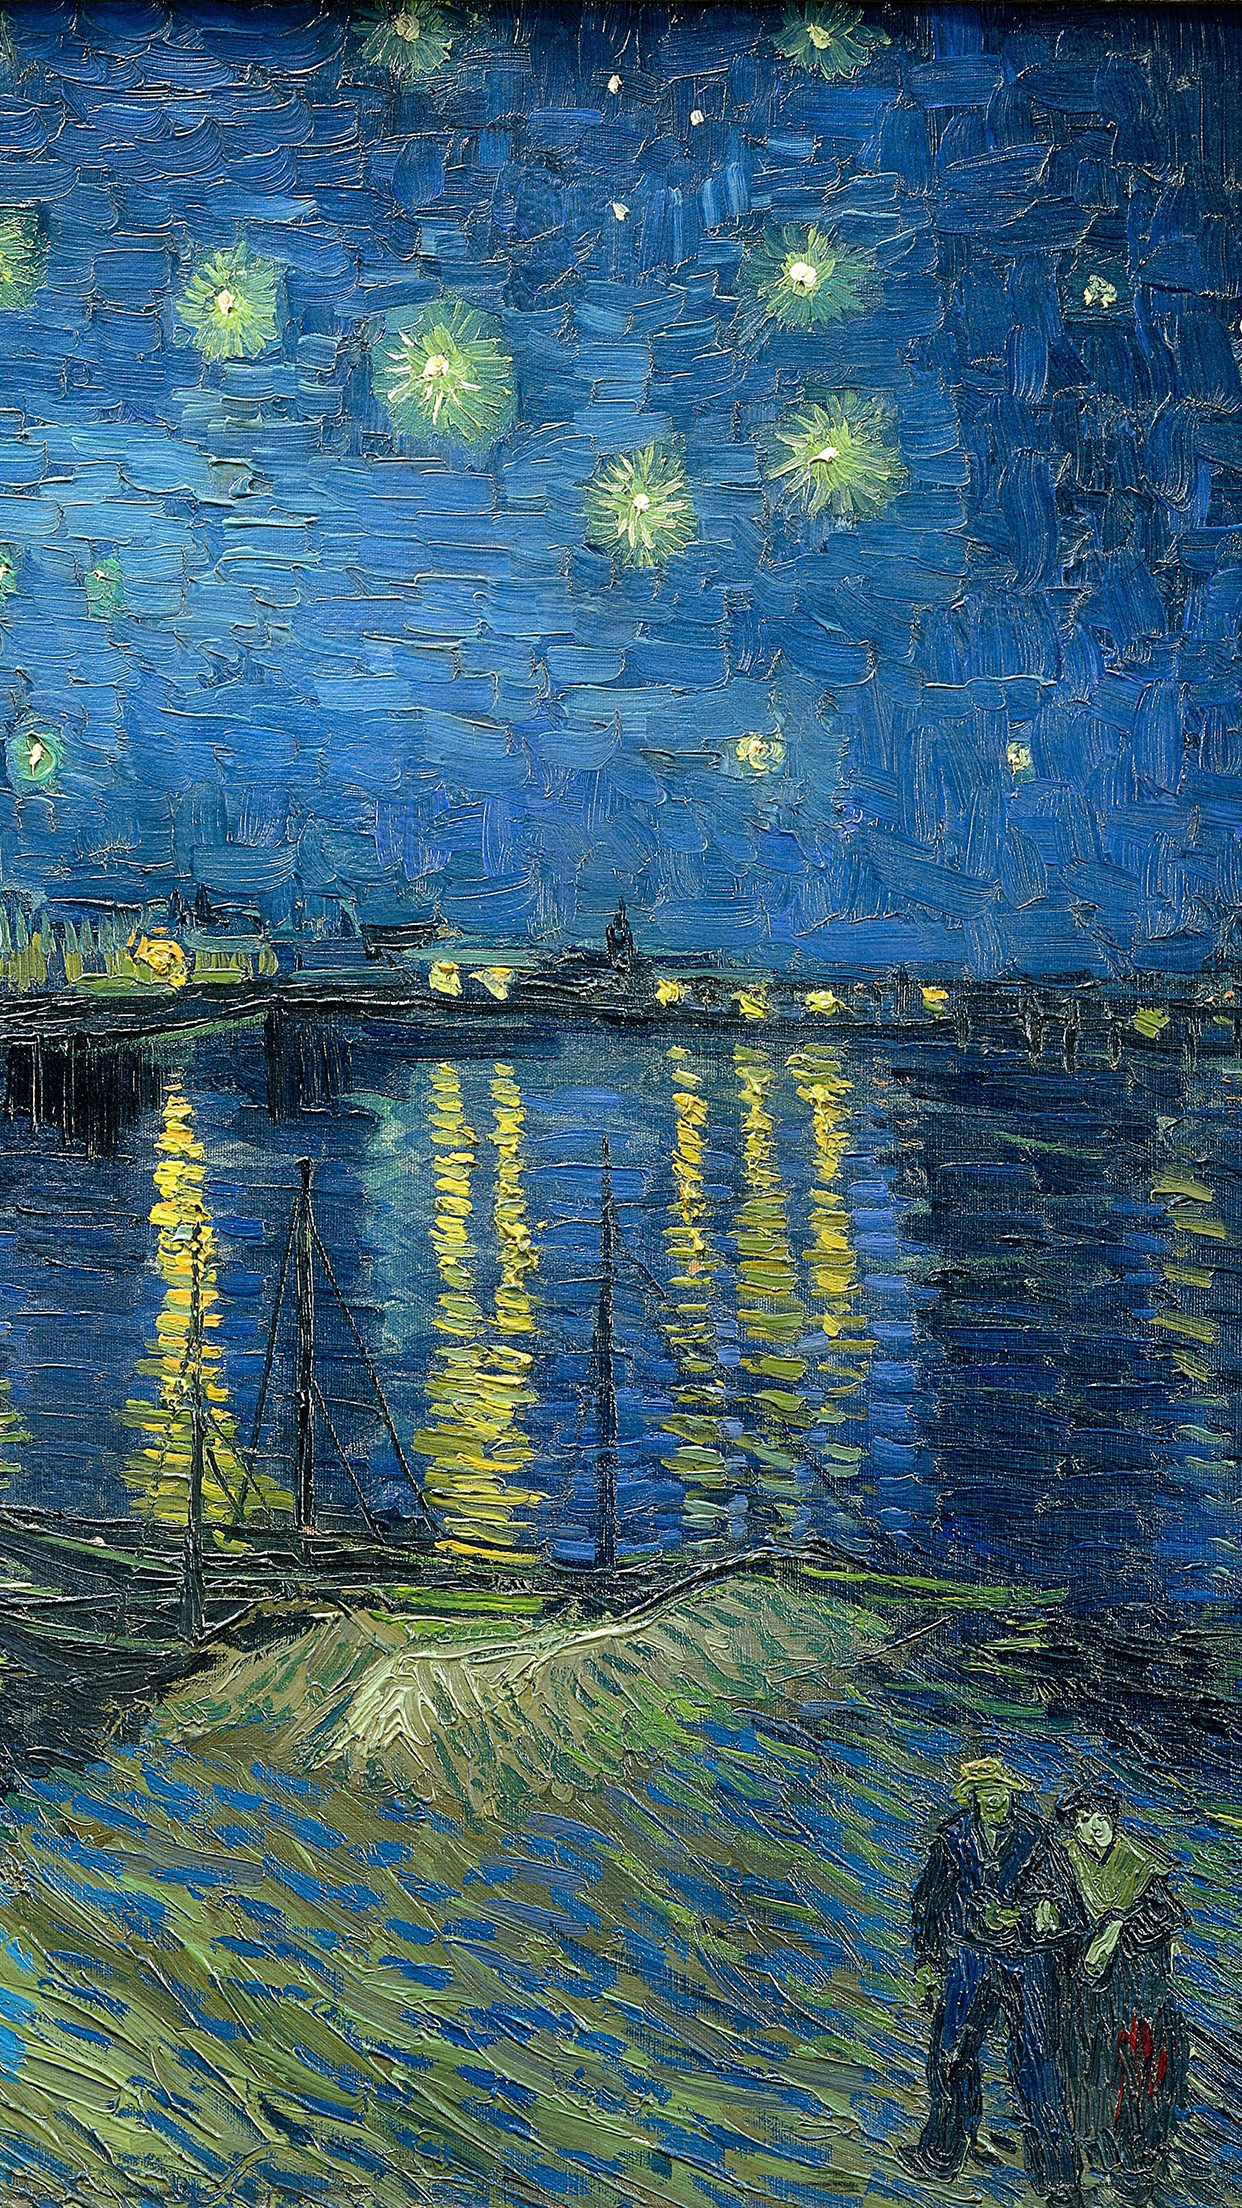 Van Gogh wallpaper Download free